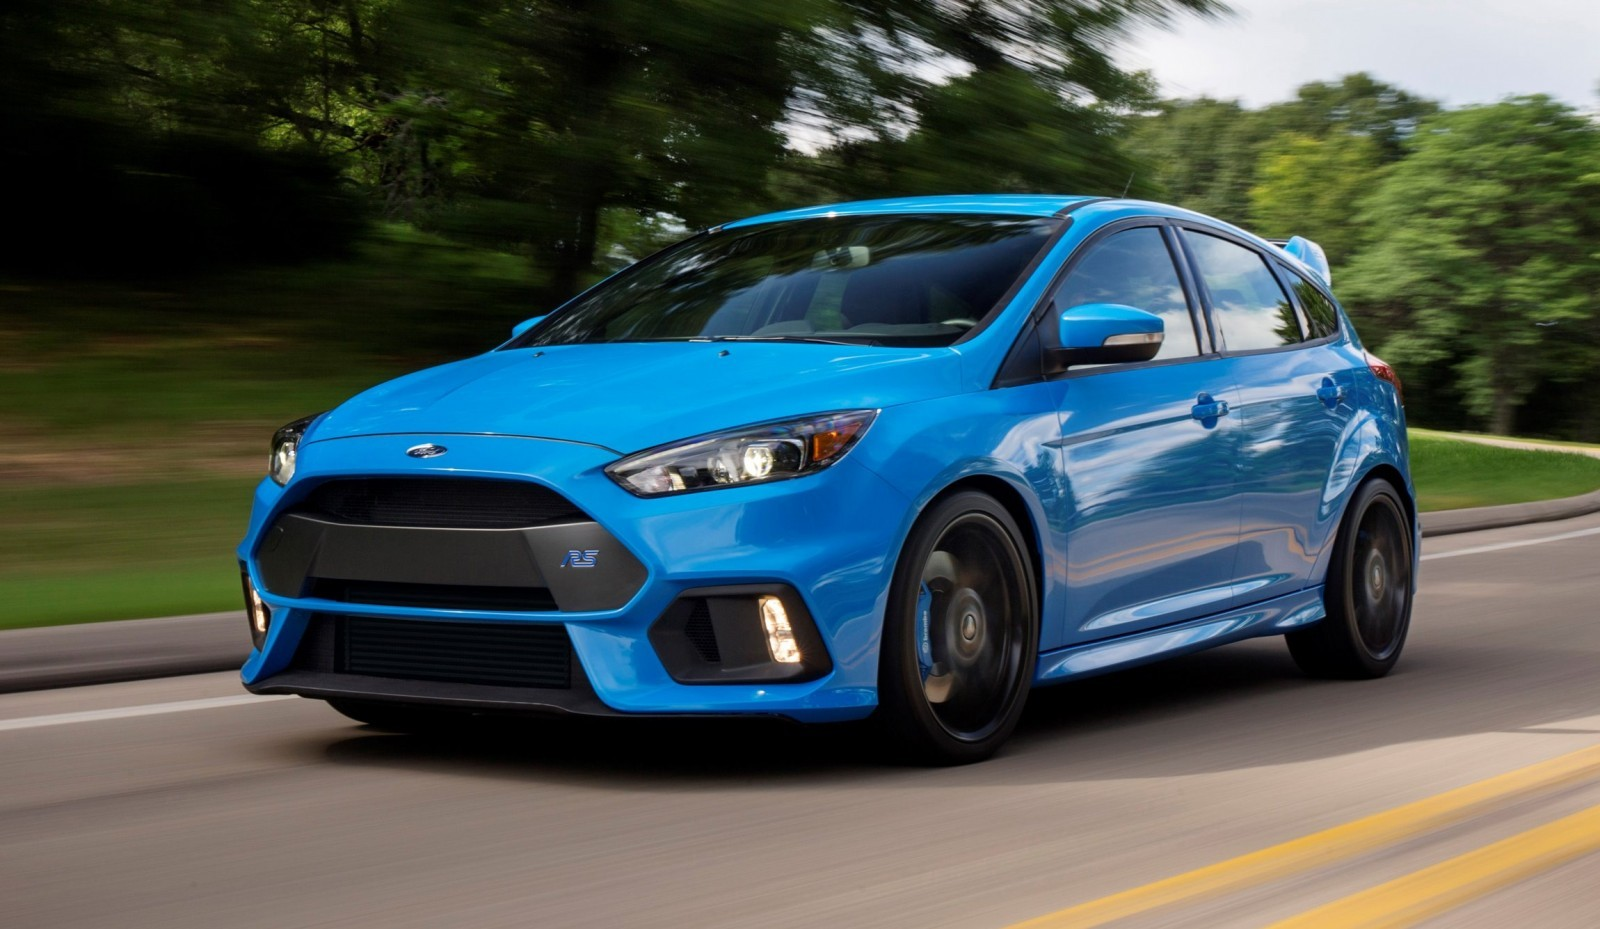 2016 ford focus rs price 36 car revs. Black Bedroom Furniture Sets. Home Design Ideas